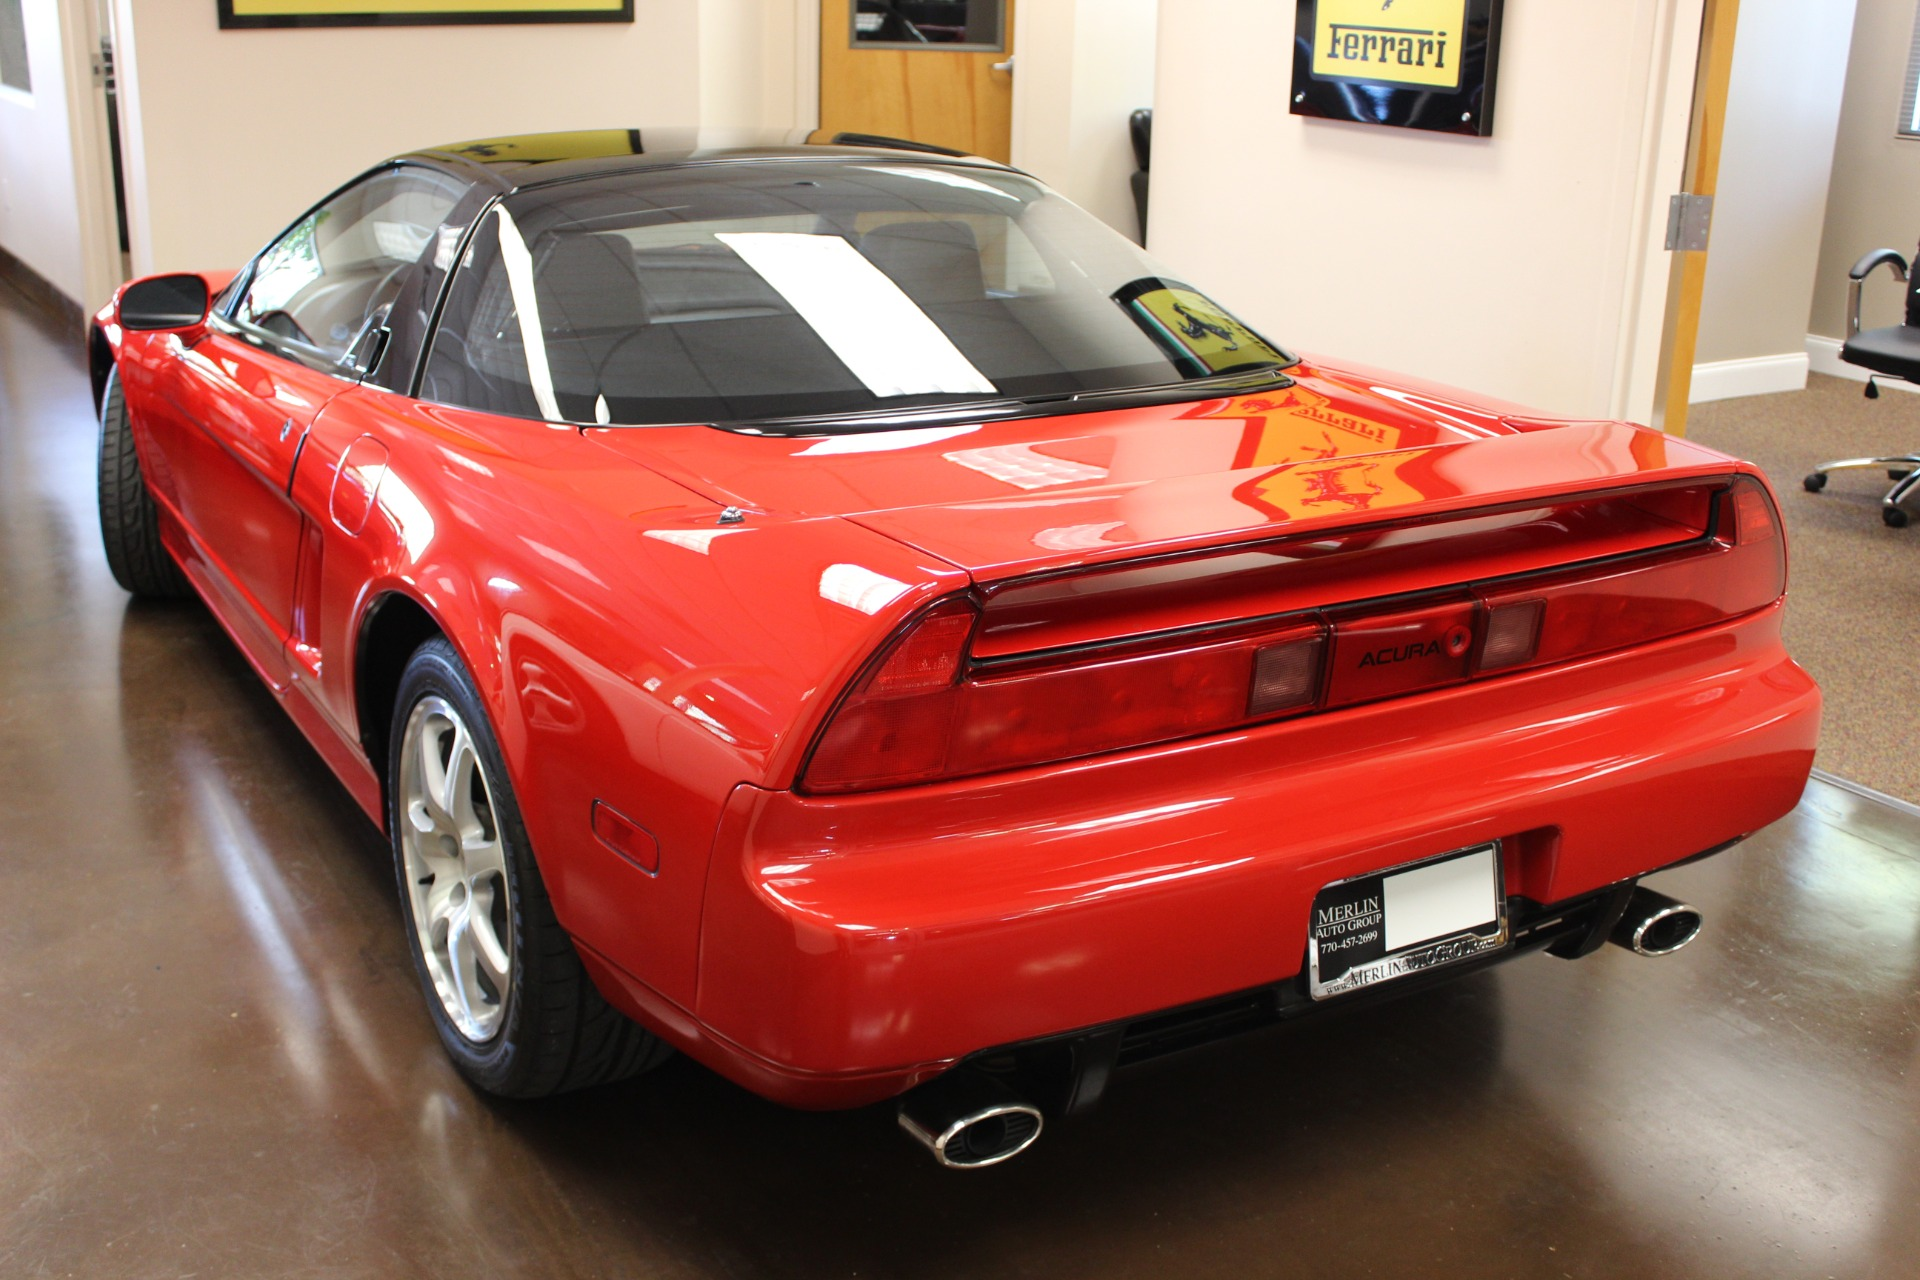 used 1992 acura nsx red coupe v6 3l manual leather all original for sale acura nsx 1992 for. Black Bedroom Furniture Sets. Home Design Ideas